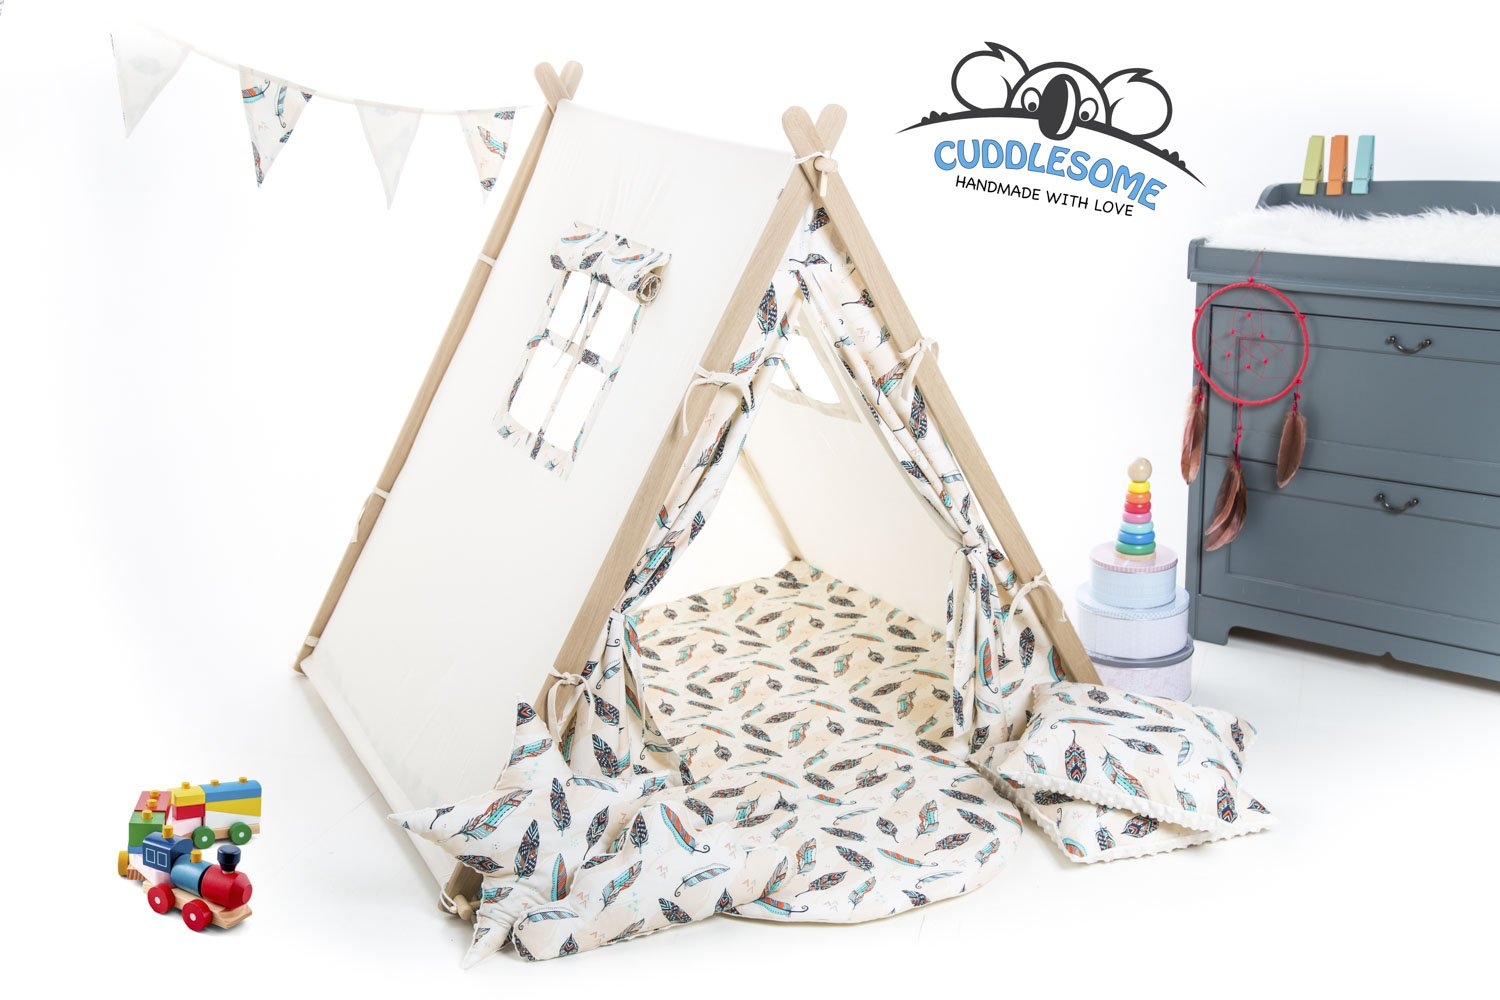 Cream feathers teepee tent playhouse for children by Cuddlesome